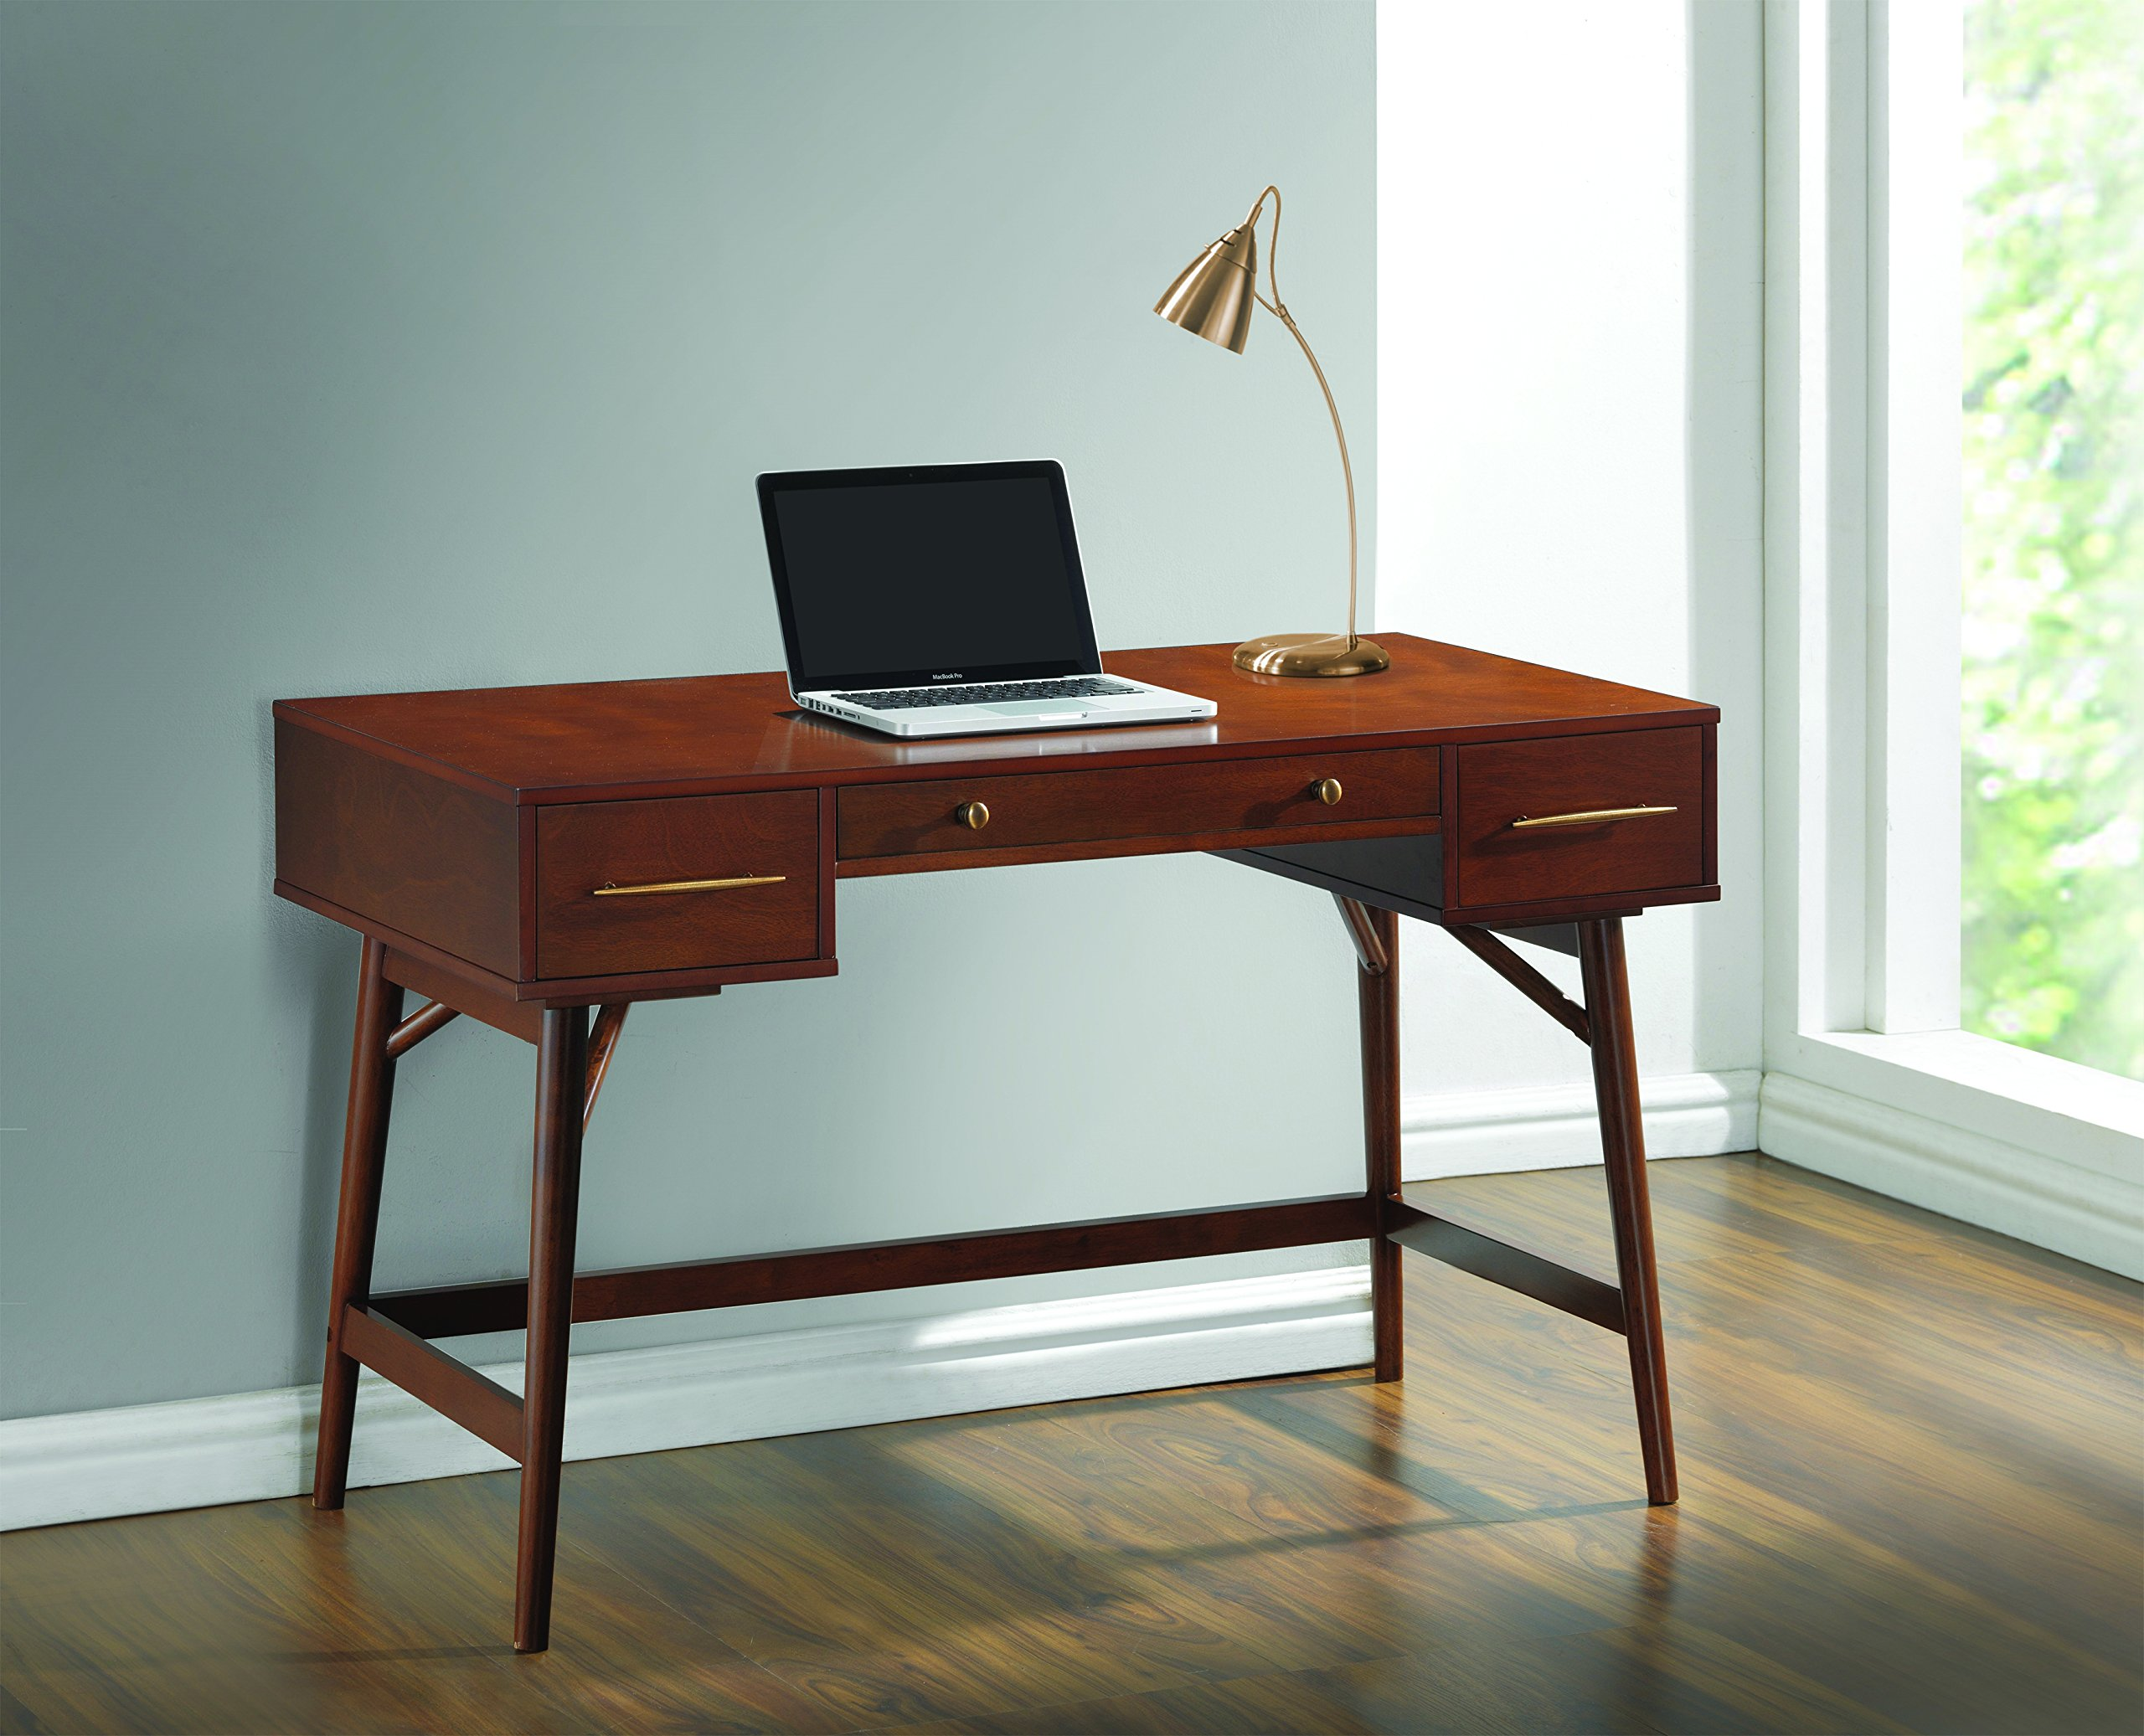 Coaster 800744 Home Furnishings Desk, Walnut